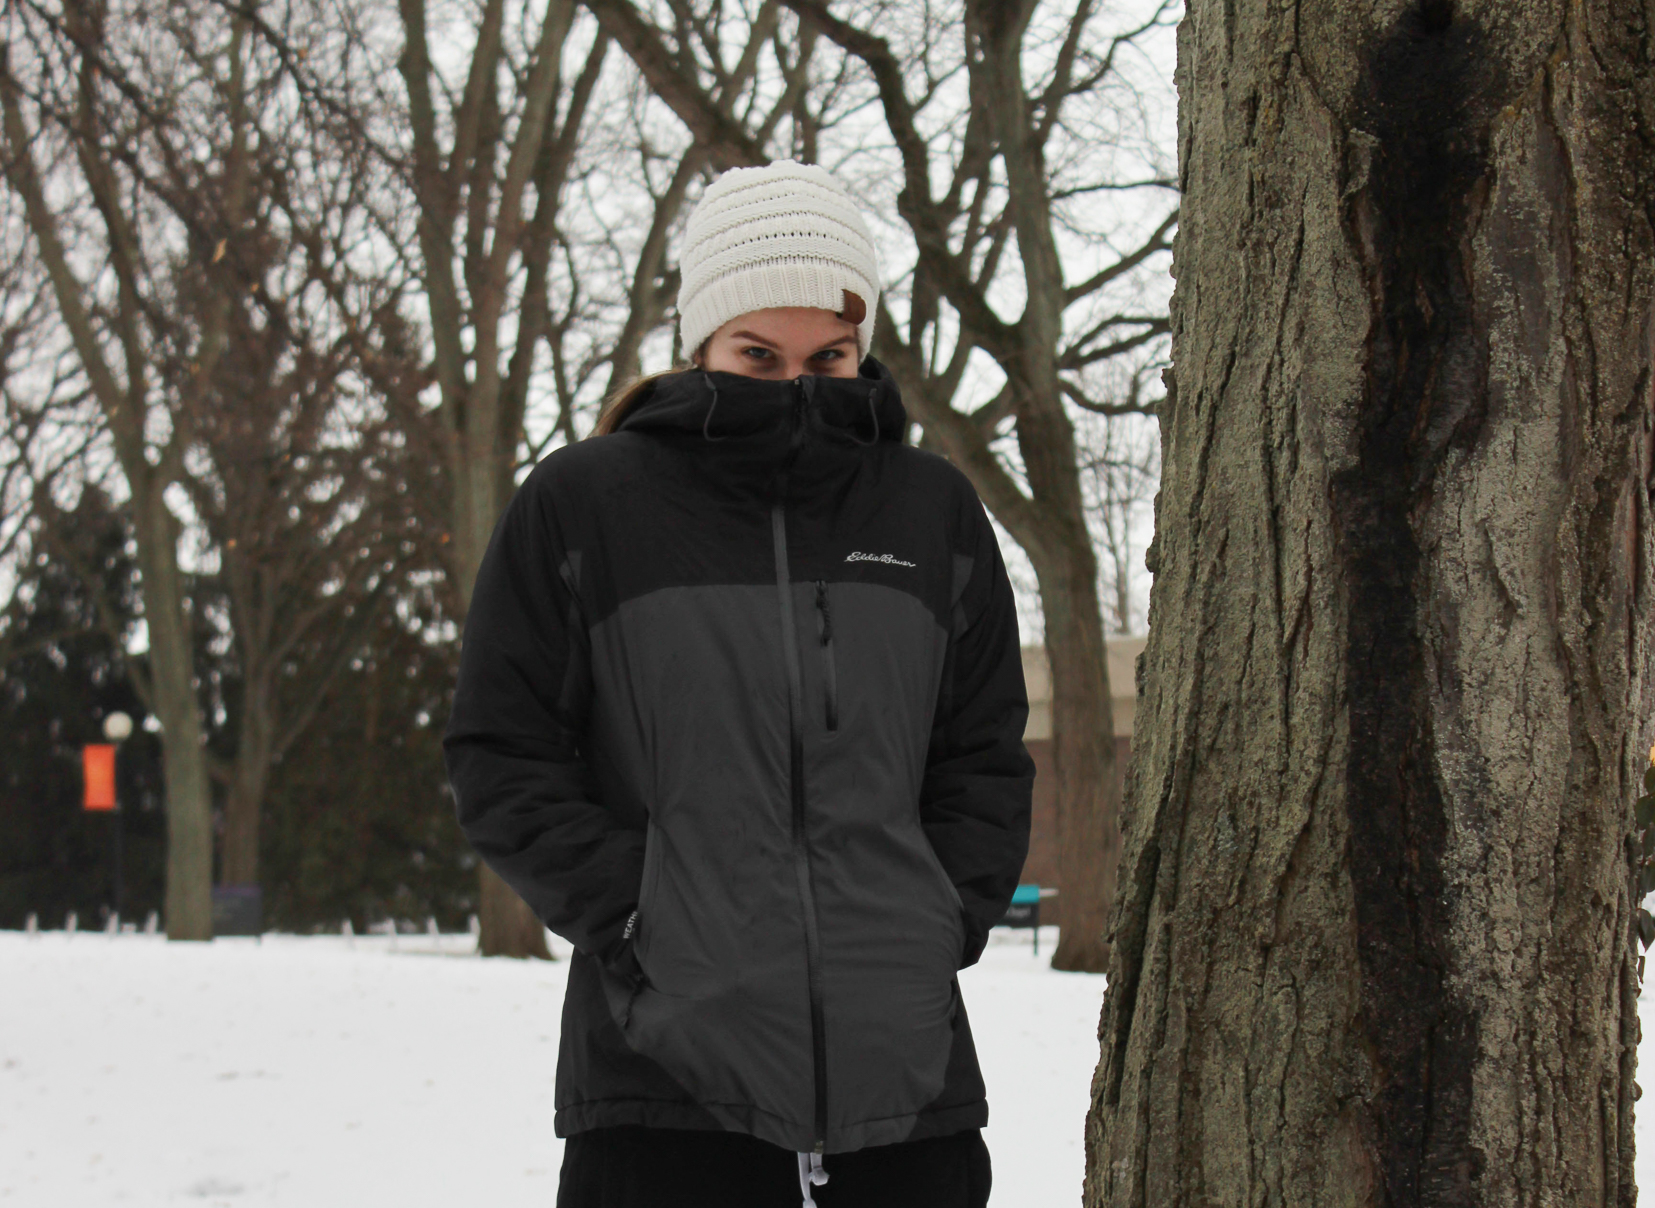 Olivia Clemens wears warm winter clothing in the snow on campus